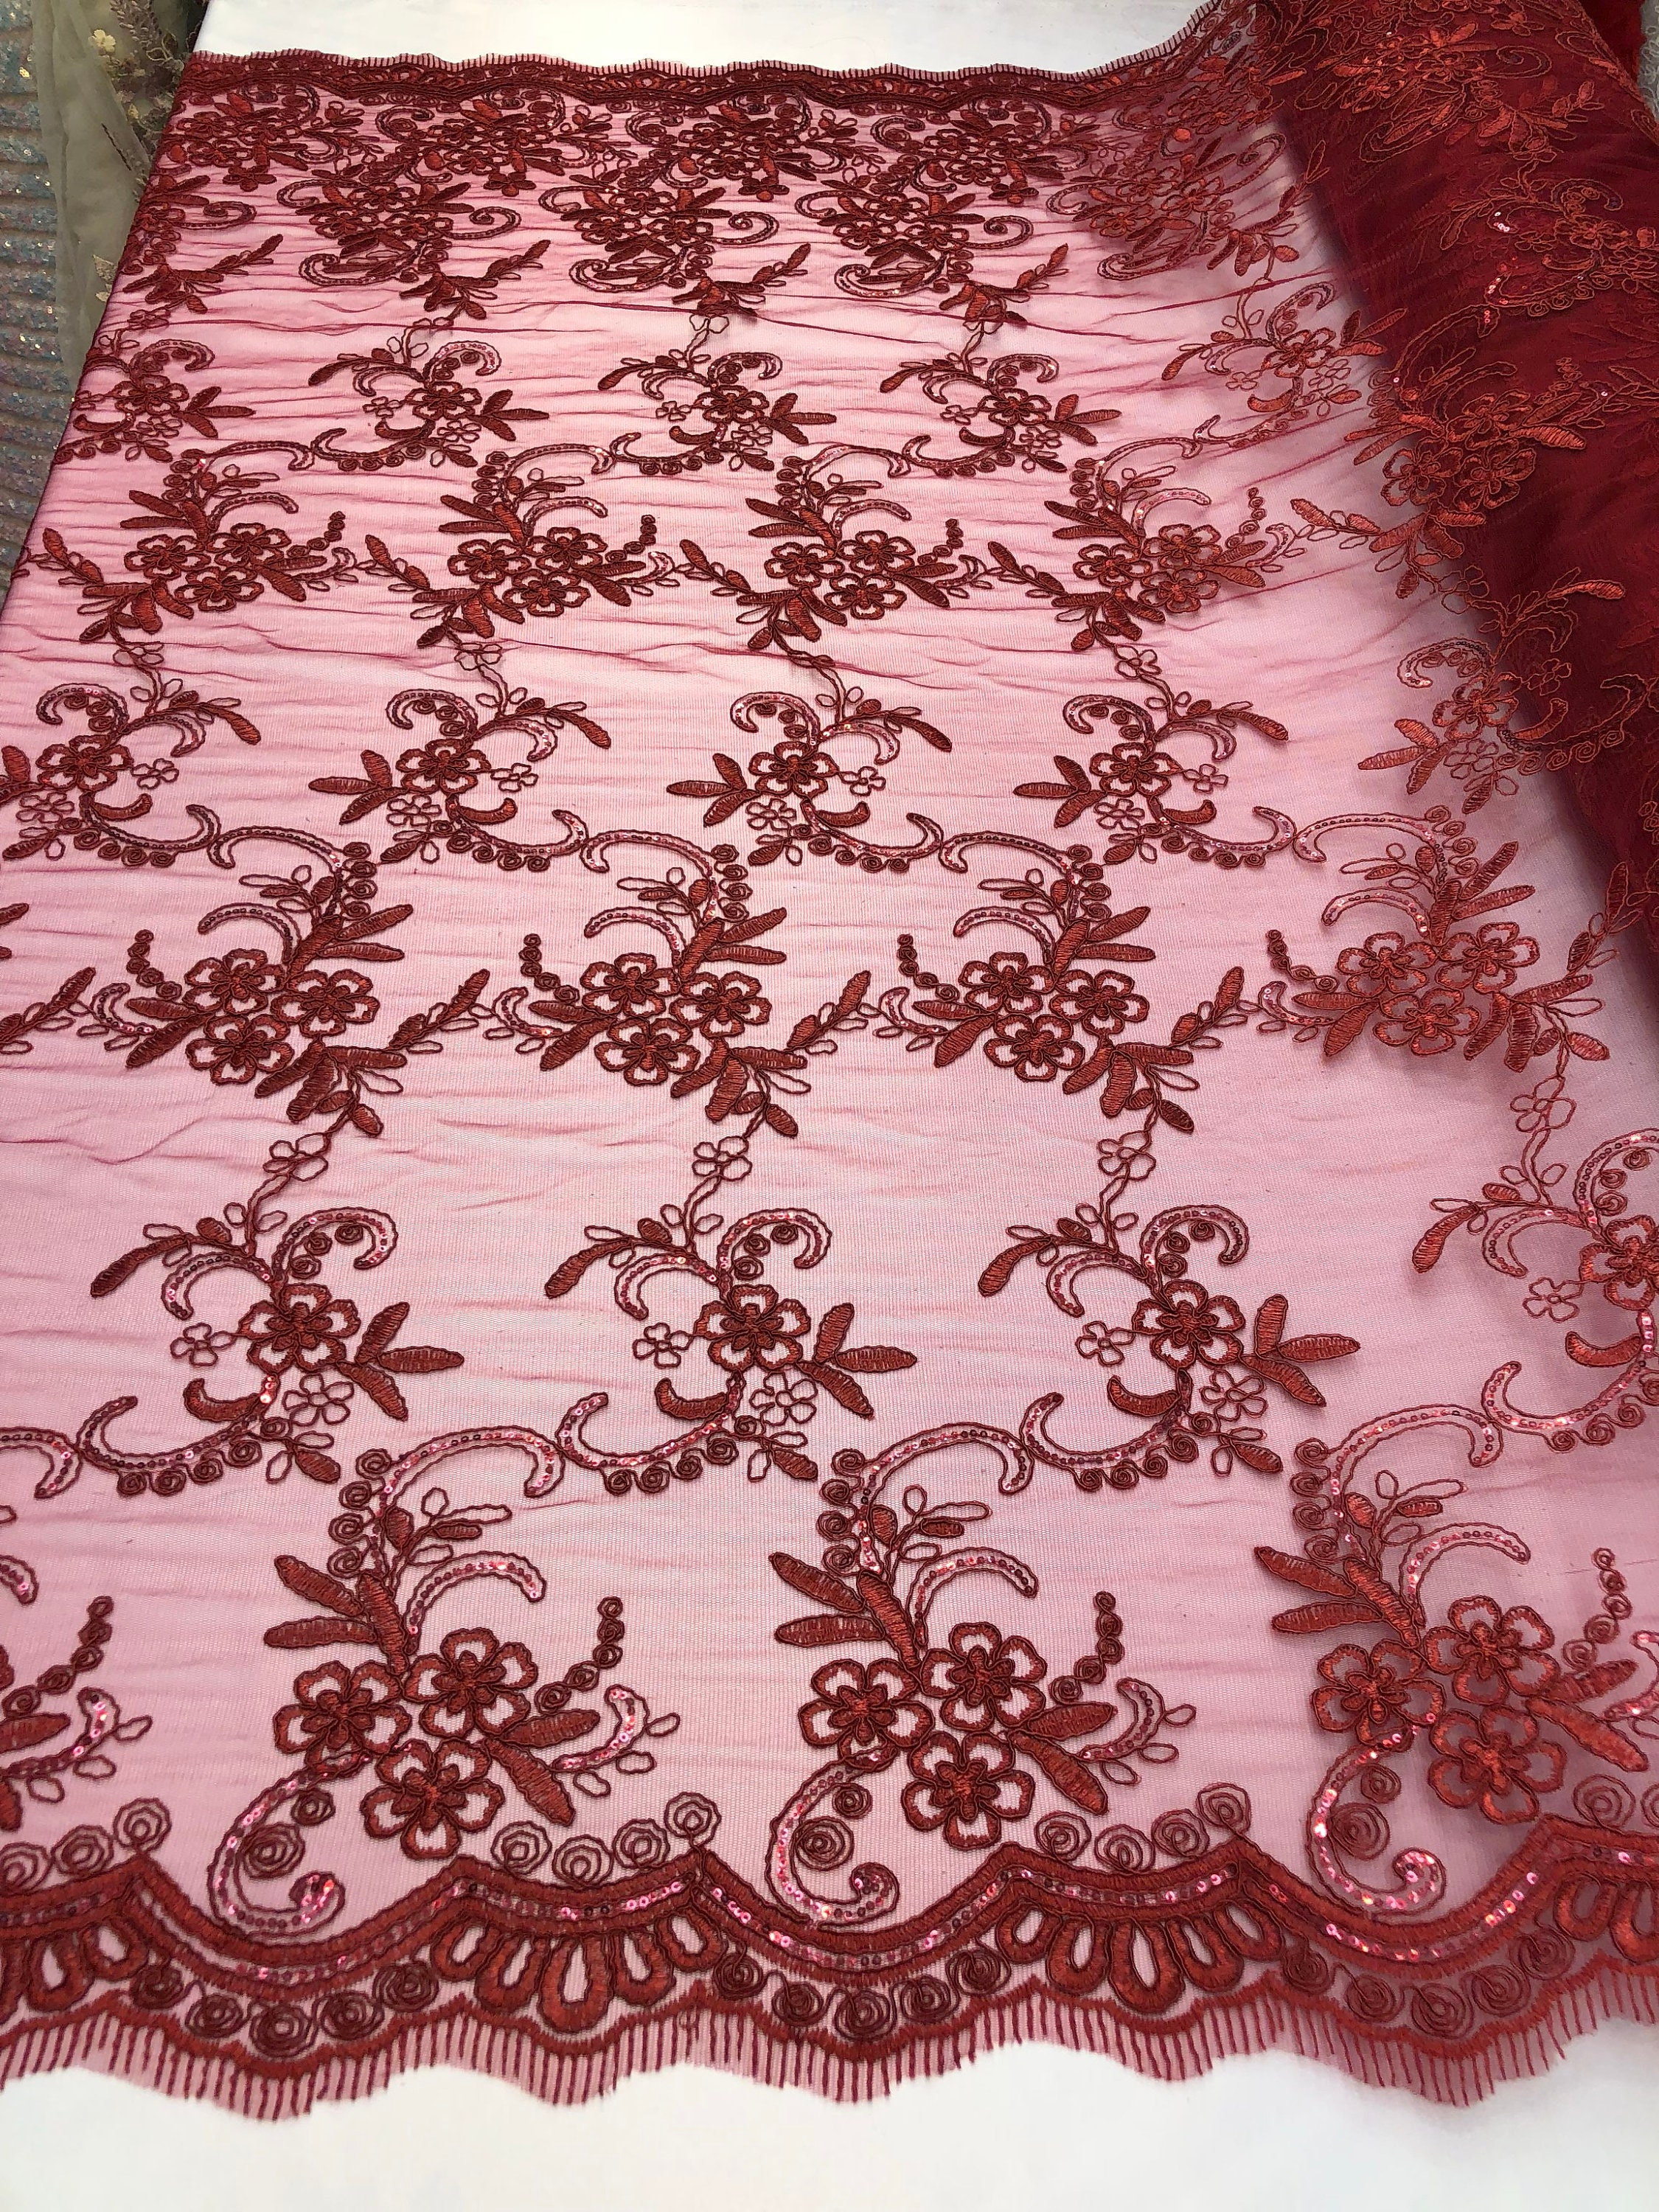 Lace fabric Corded Flowers Embroider With Sequins On Mesh Red By The Yard